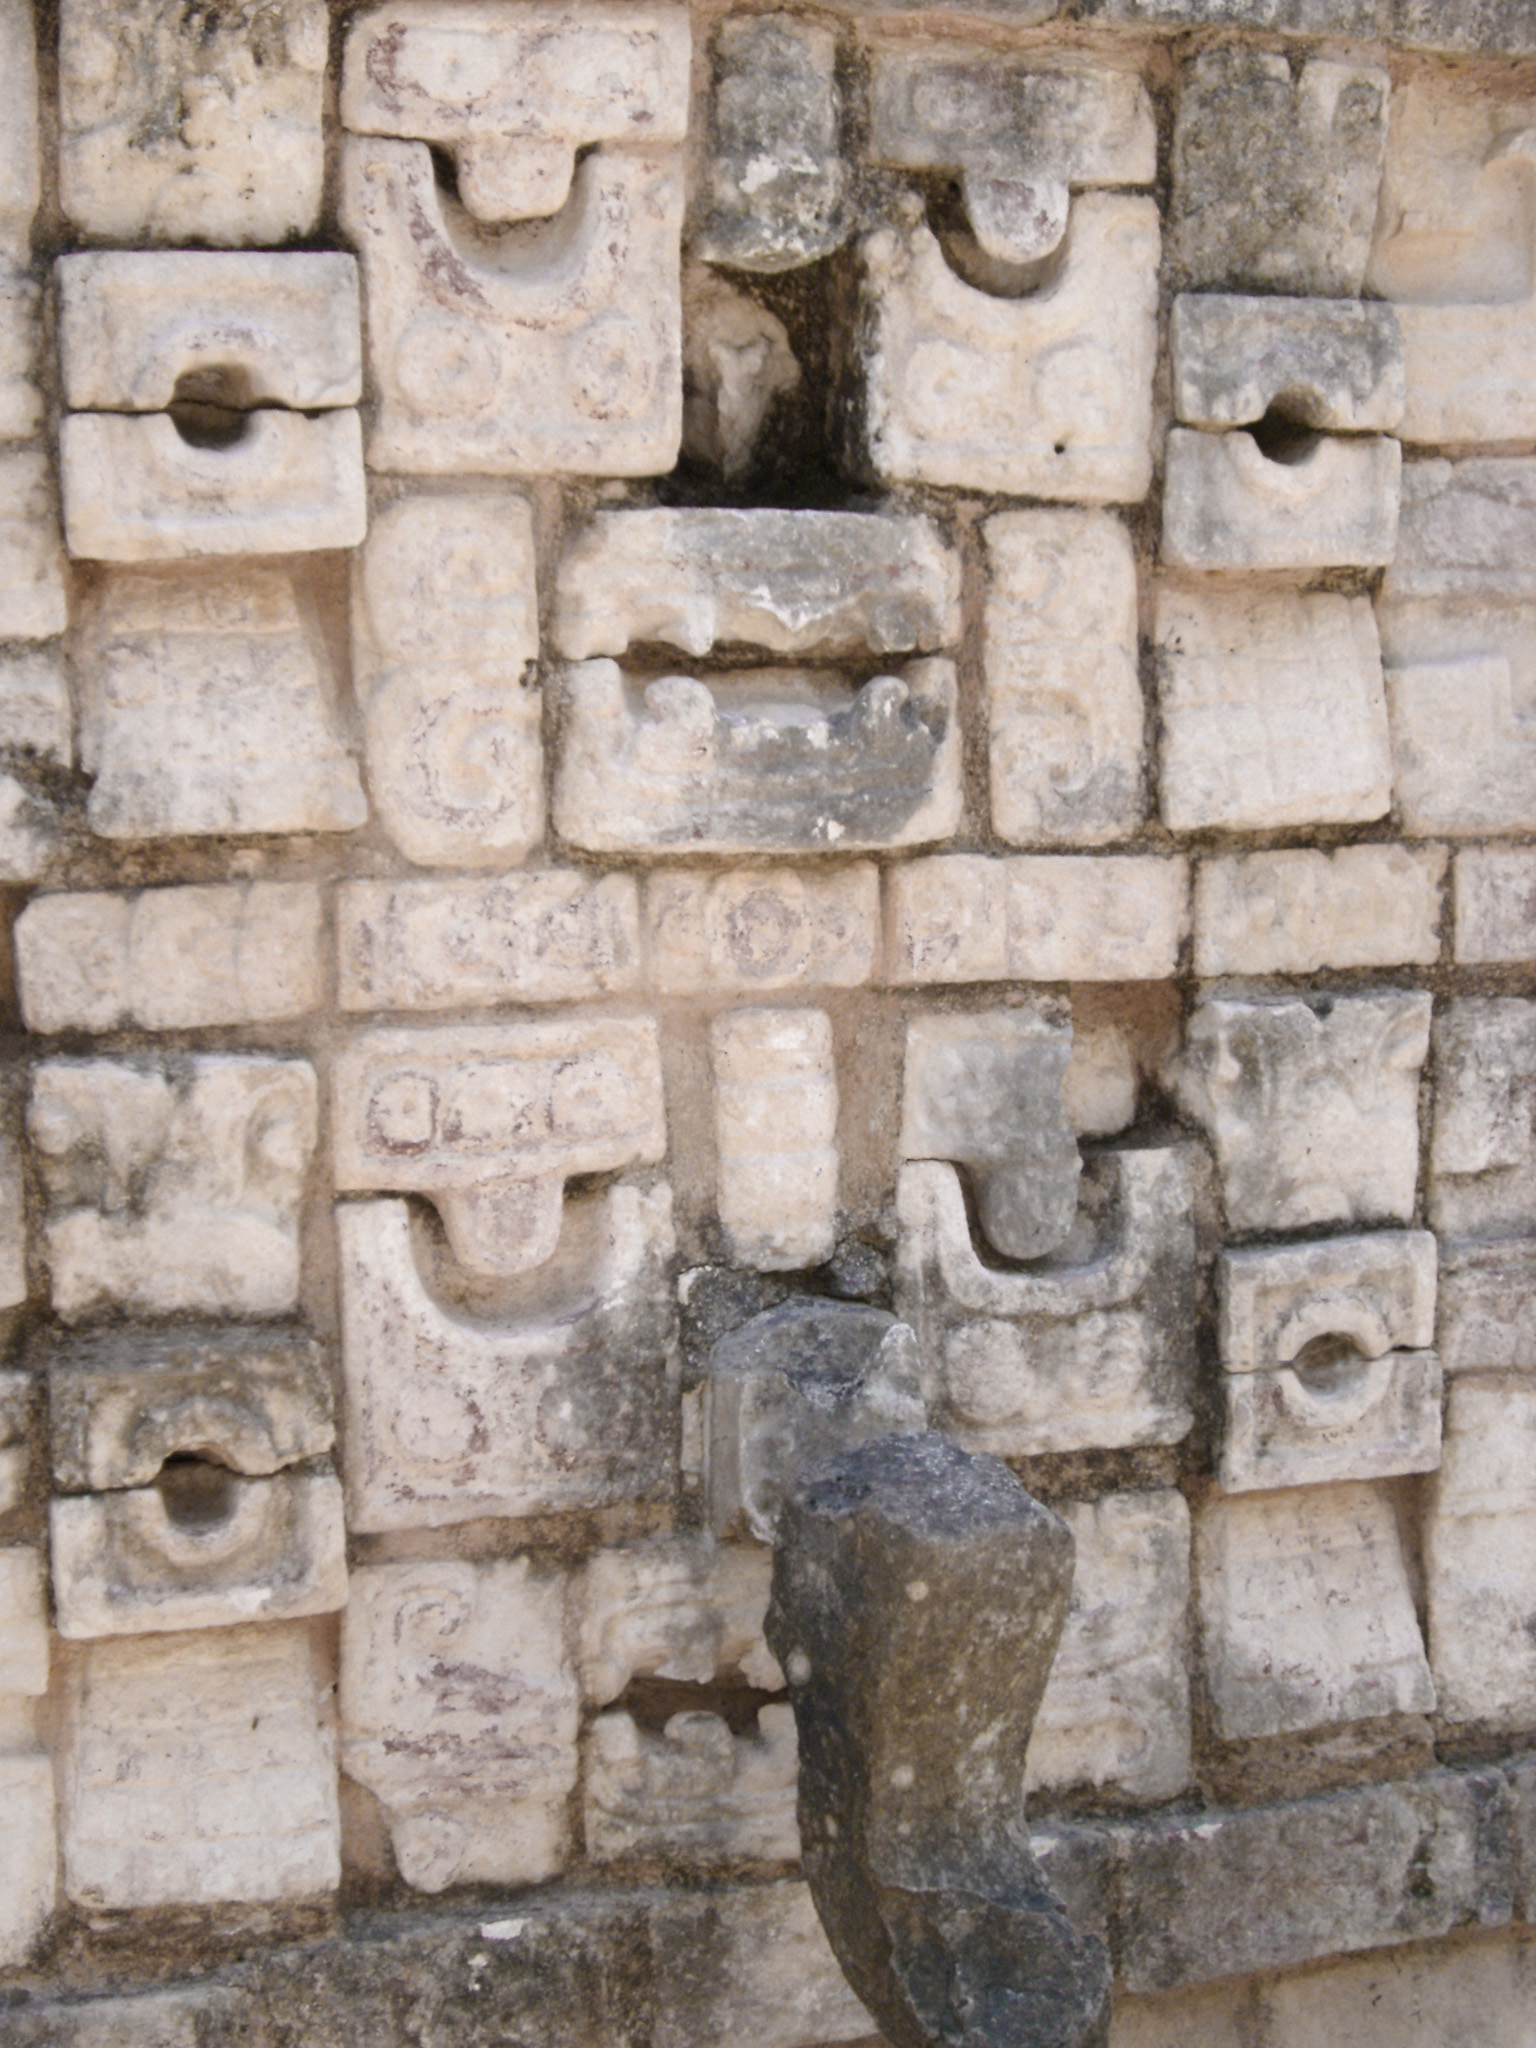 Detail of stonework and carvings at Chitzen Itza, an important Mayan archaeological site on the Yucatan Peninsula, Mexico